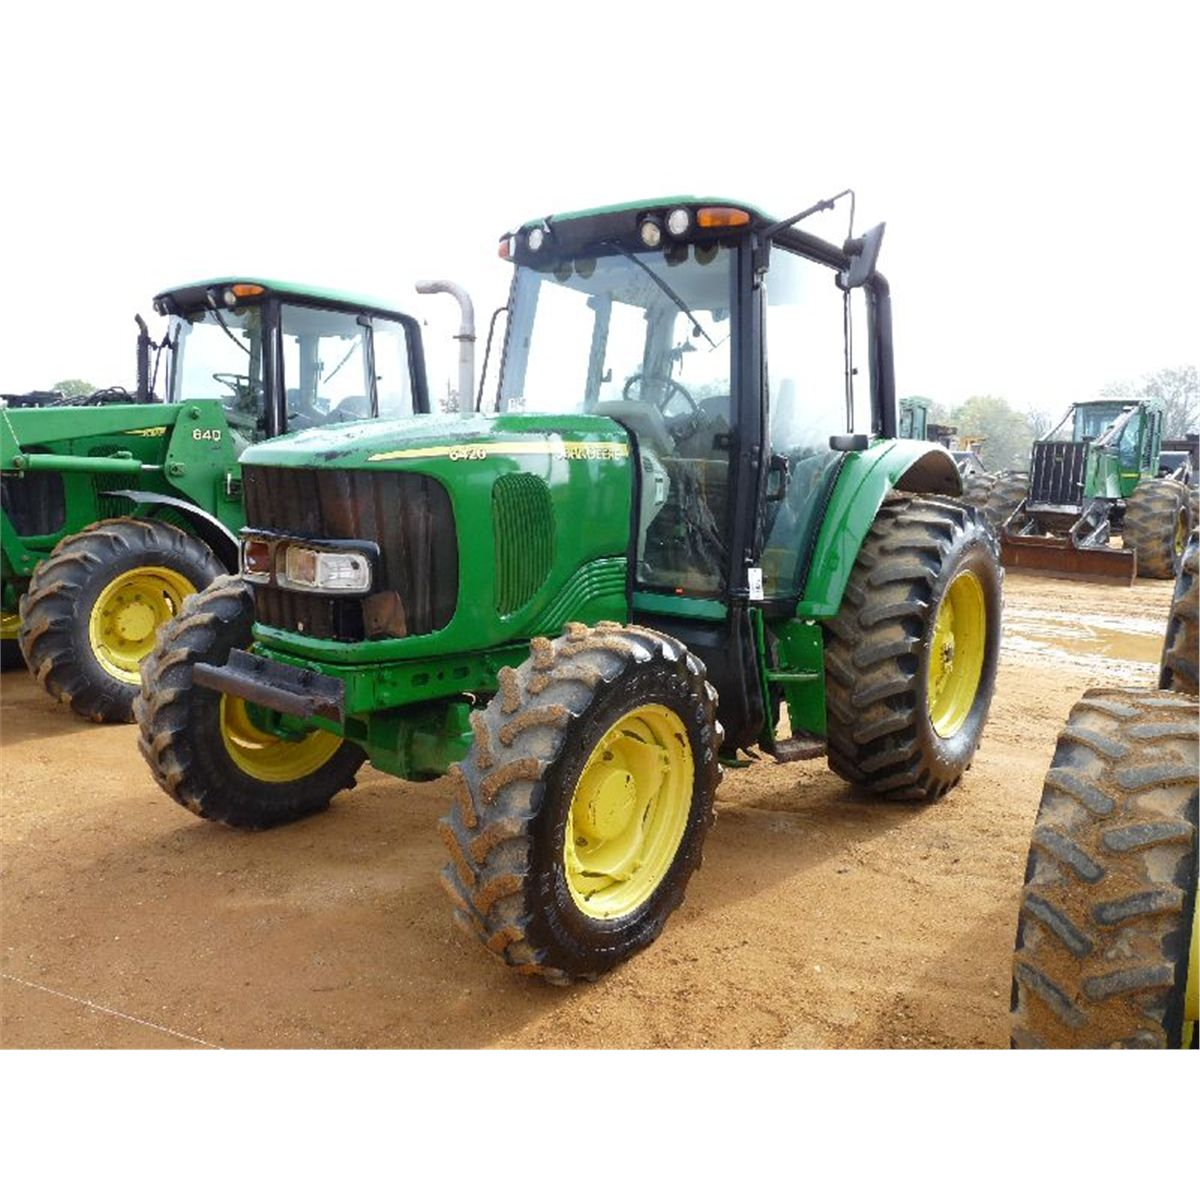 john deere 6420 4x4 farm tractor j m wood auction company inc. Black Bedroom Furniture Sets. Home Design Ideas